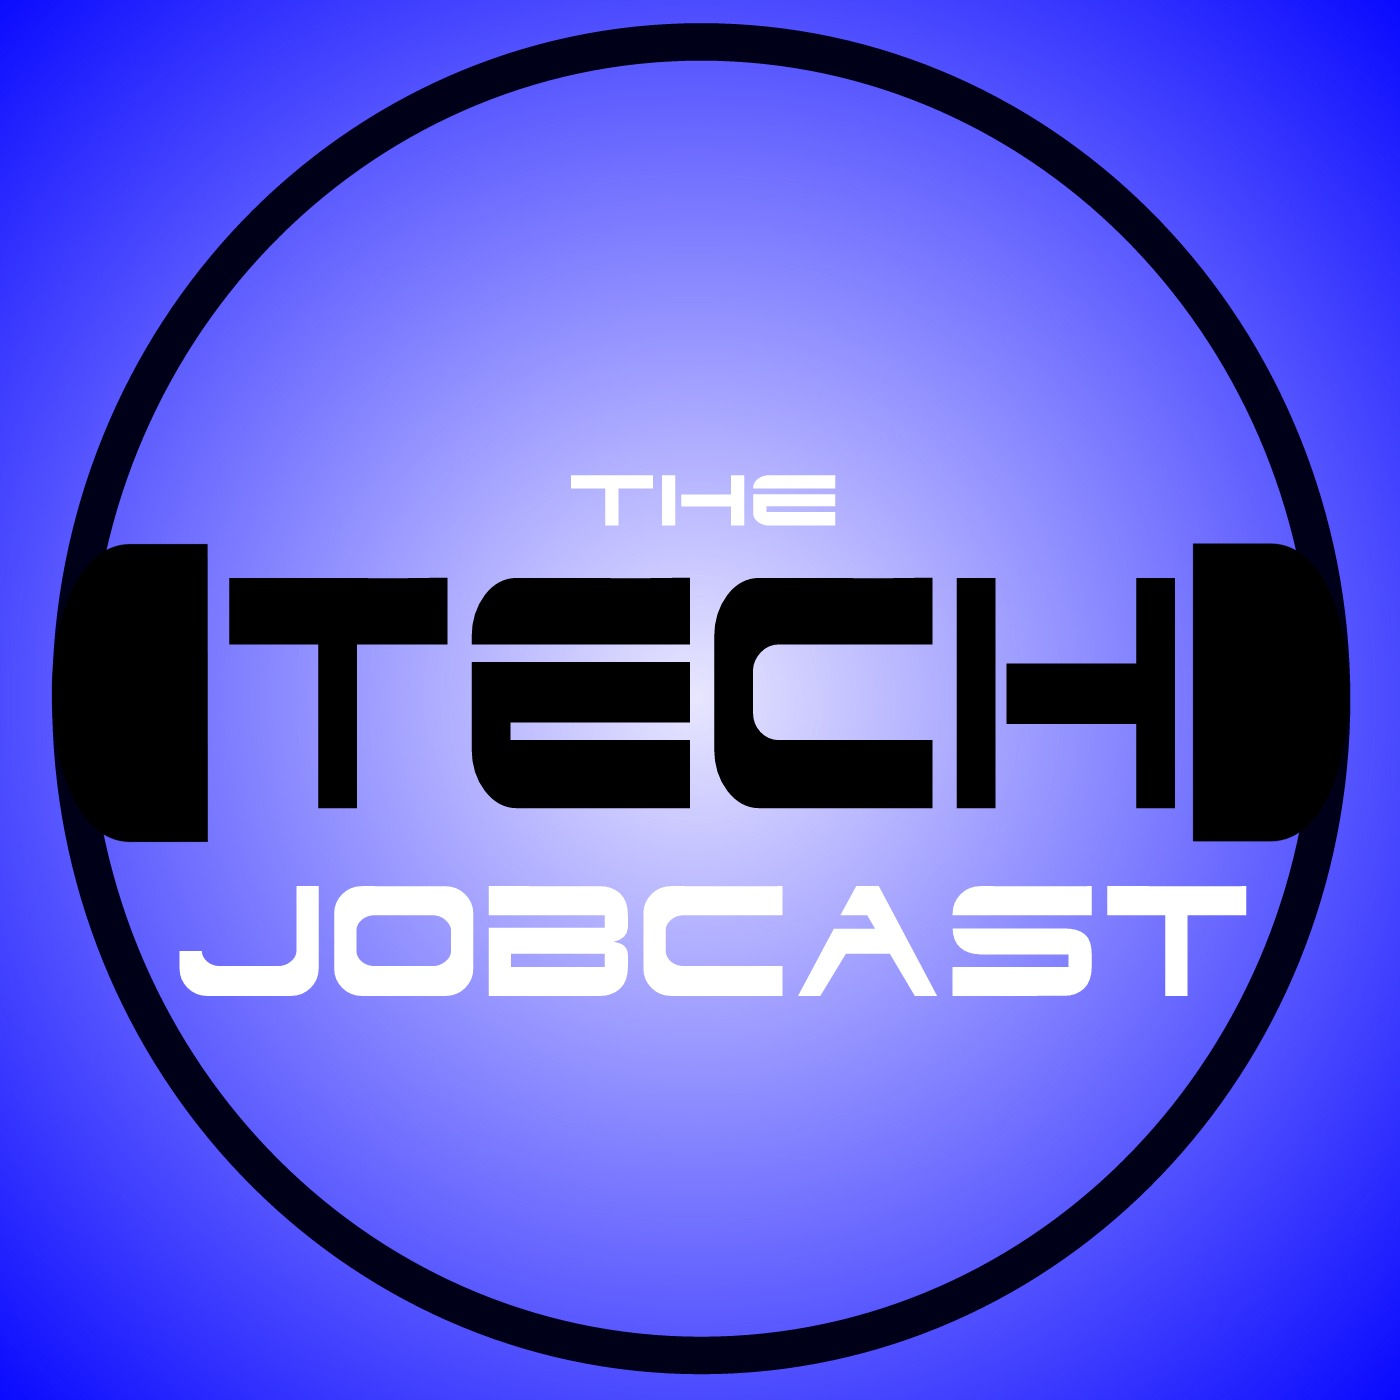 IT Job listings for the week of September 4, 2016